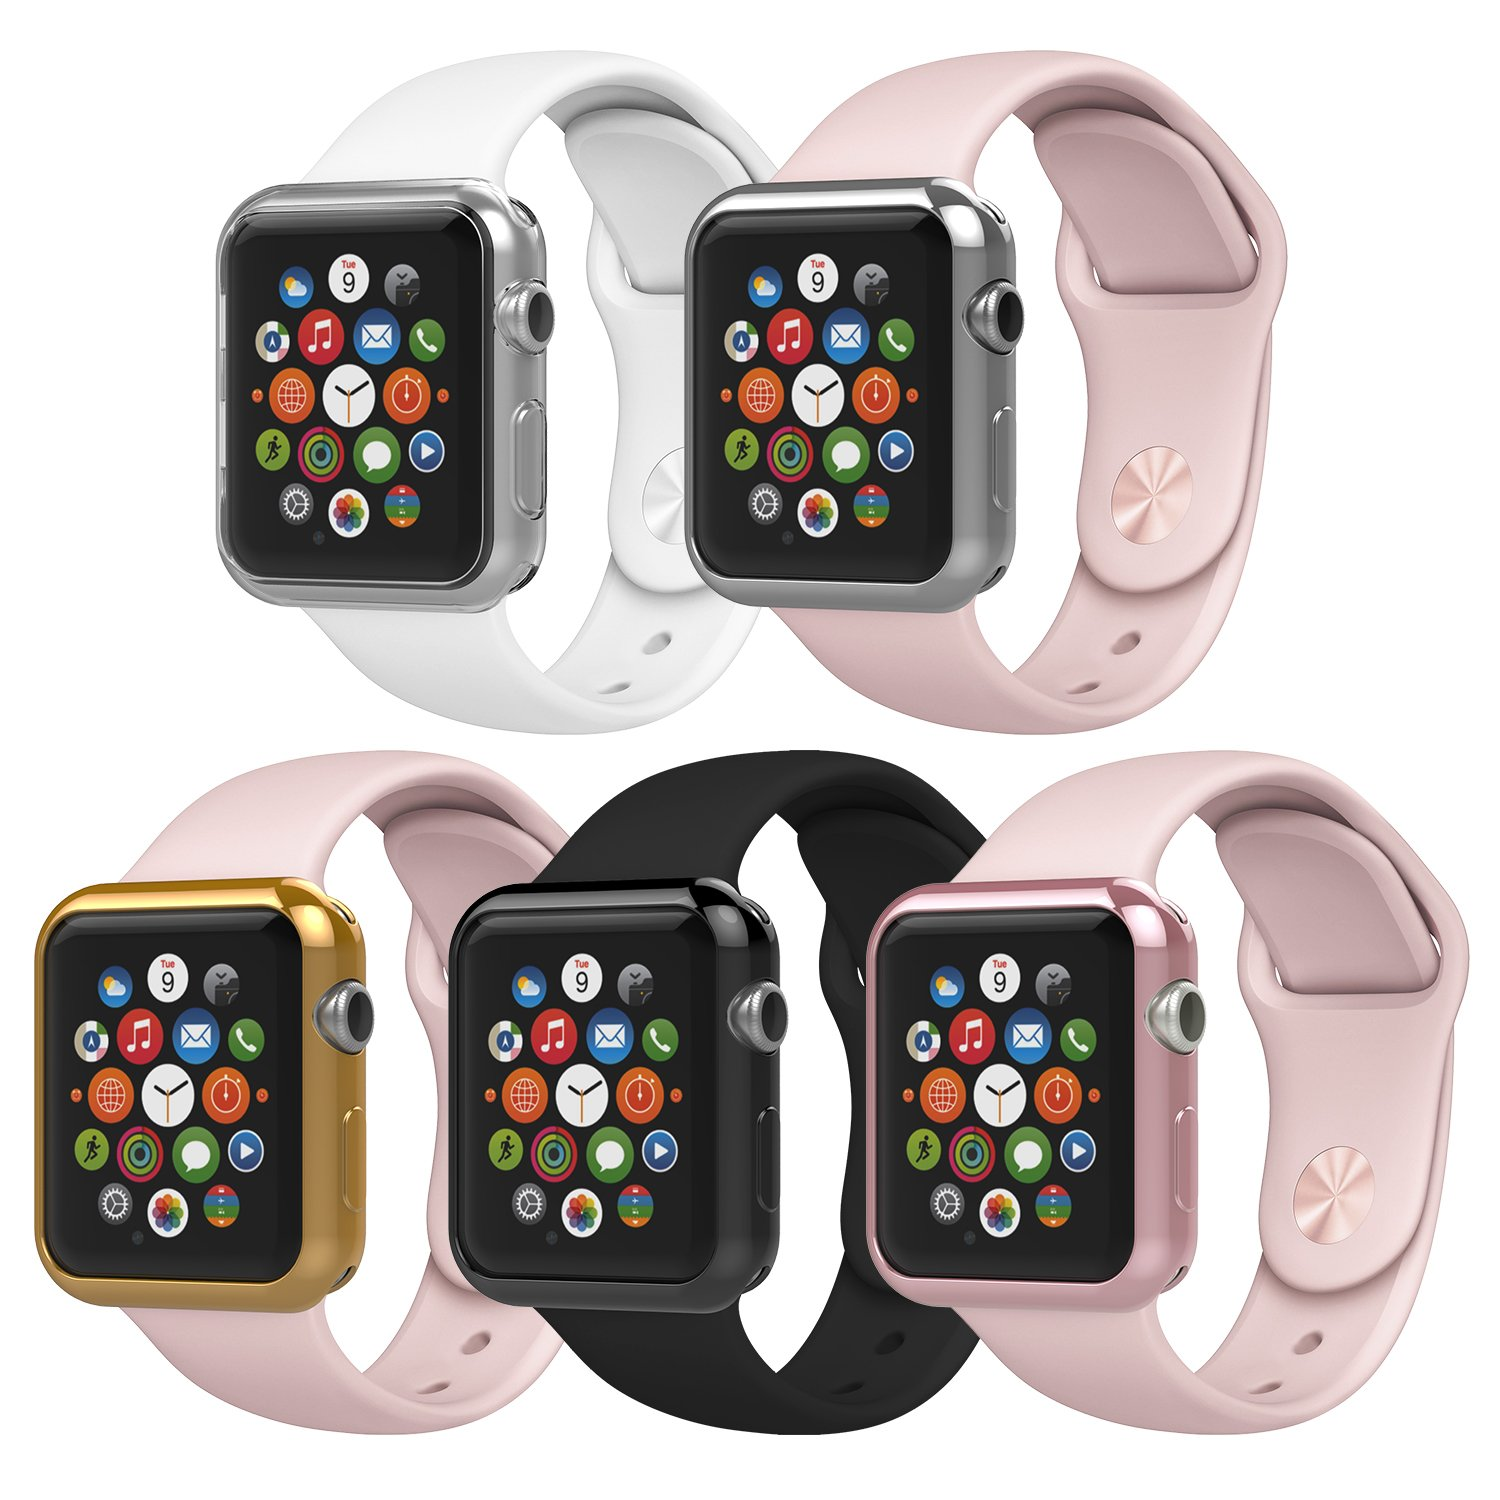 [5-Pack] Apple Watch 38mm Case, Anjoo iPhone Watch Slim TPU All-around Protective Clear Cover Case for iWatch 38mm Apple Watch Series 2 and Series 3 - Rose Gold, Gold, Silver, Transparent, Black by Anjoo (Image #7)